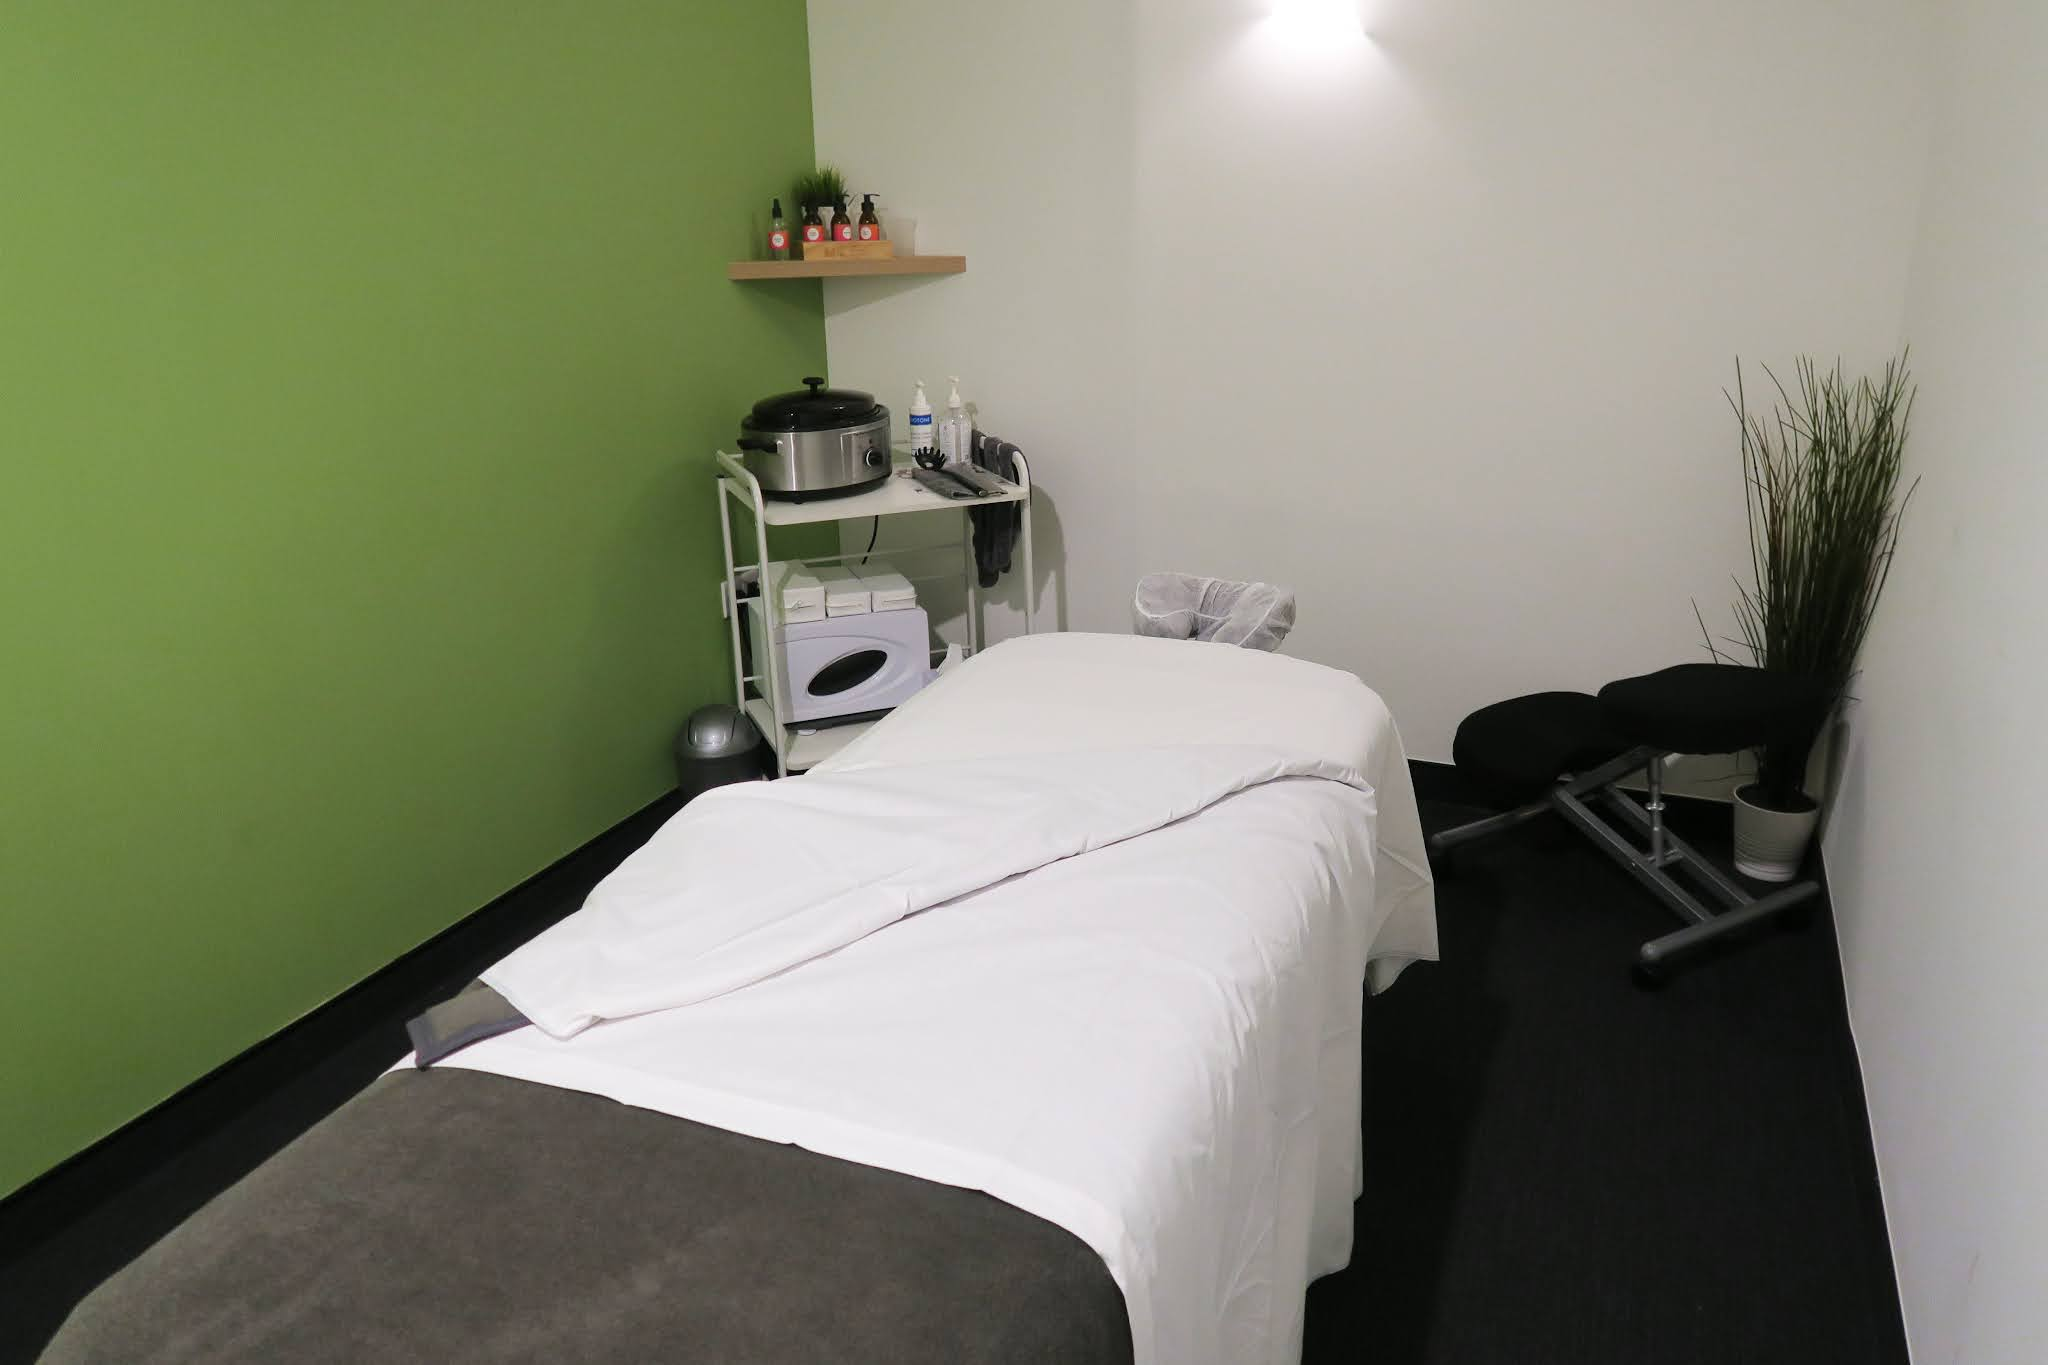 Inside the treatment room. In the foreground the massage table can be seen and in the background is a table with a range of prodcts.